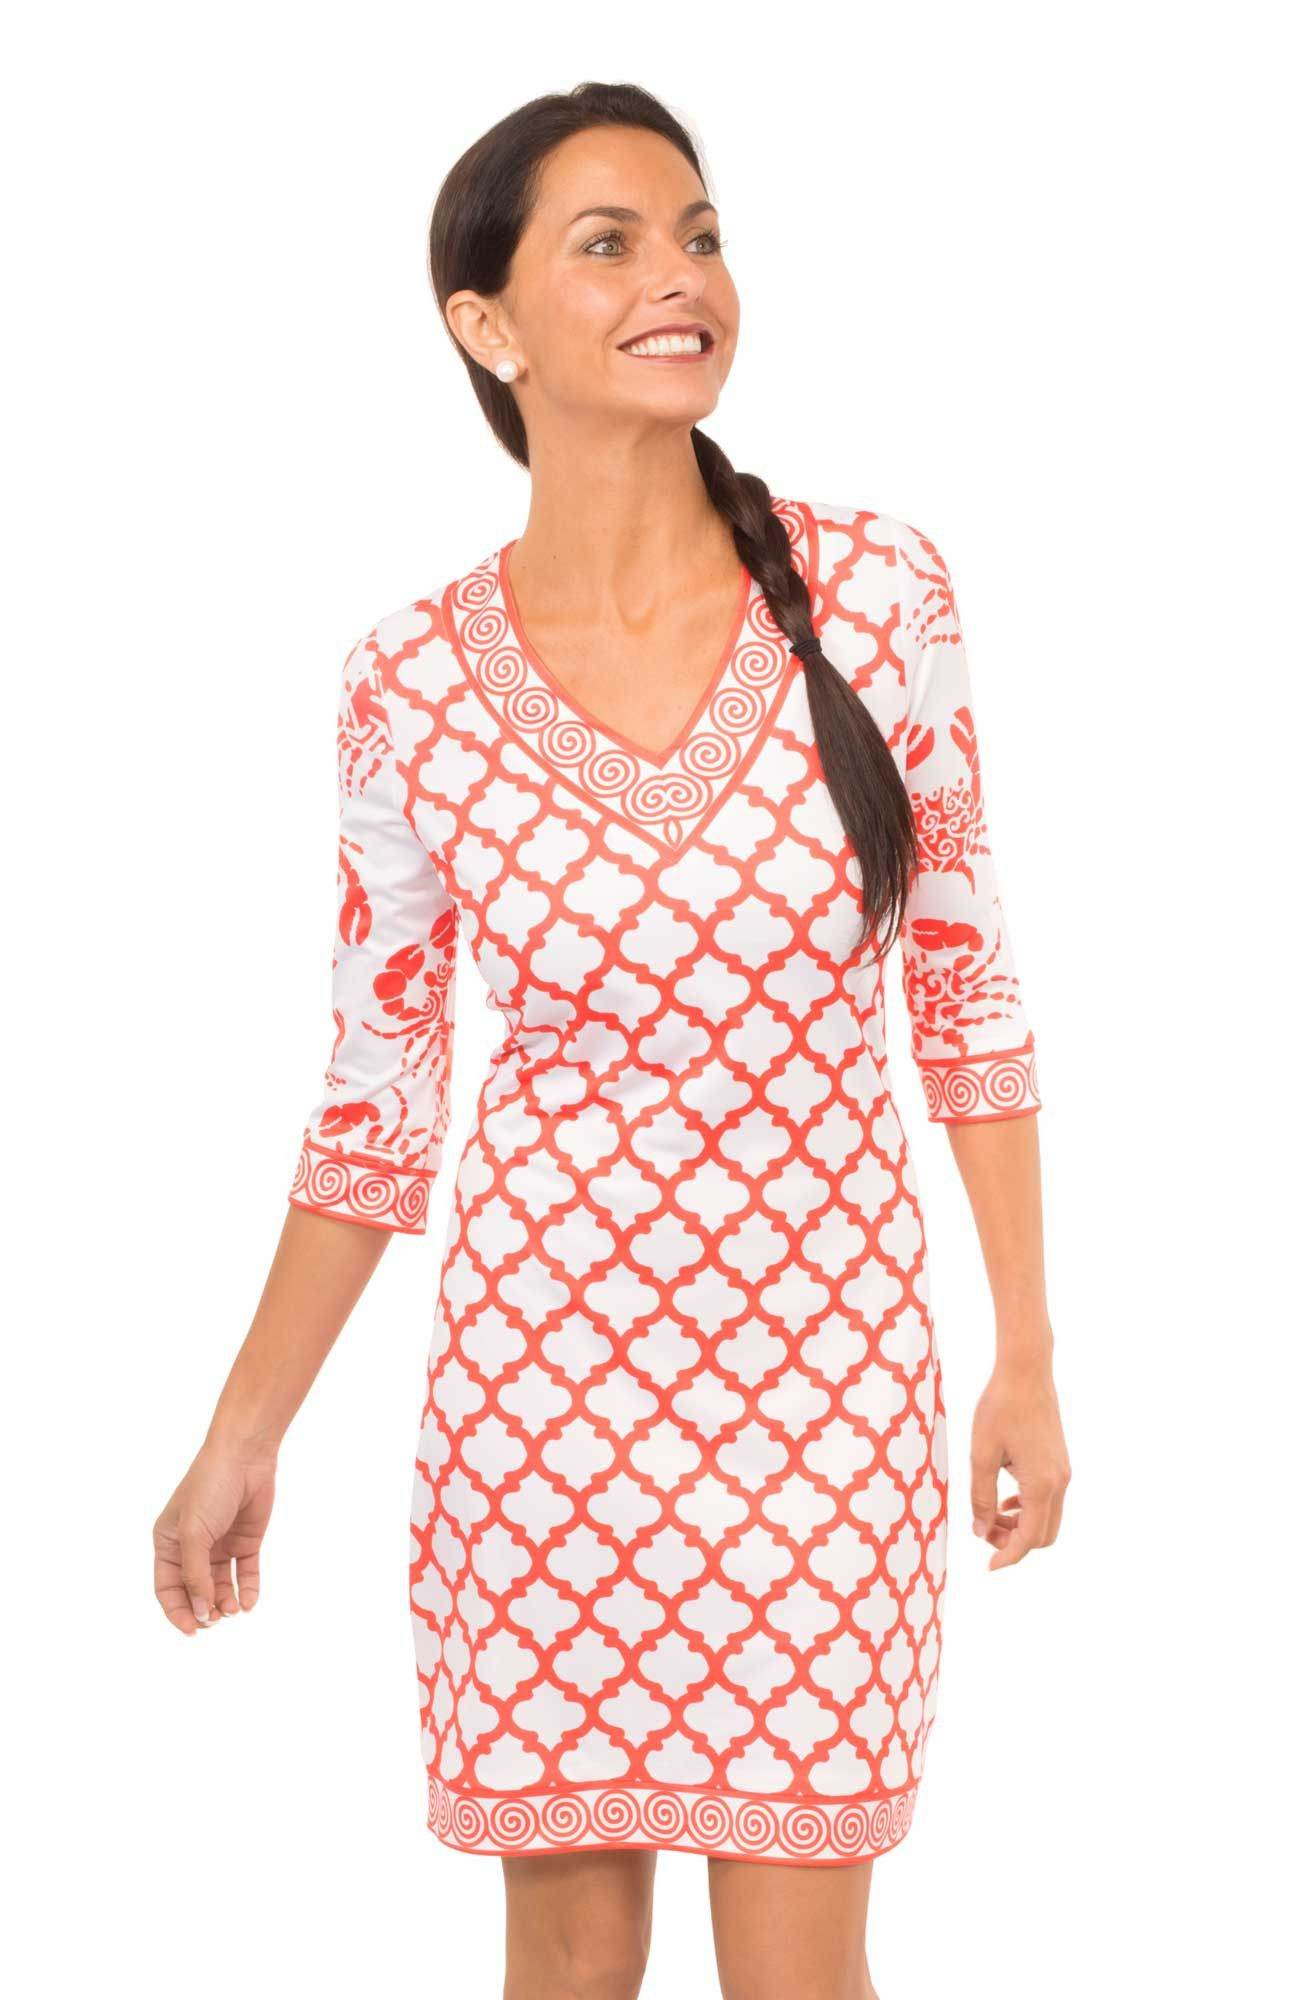 Gretchen Scott Crab Soup V-Neck Jersey Dress in Tomato from THE ...